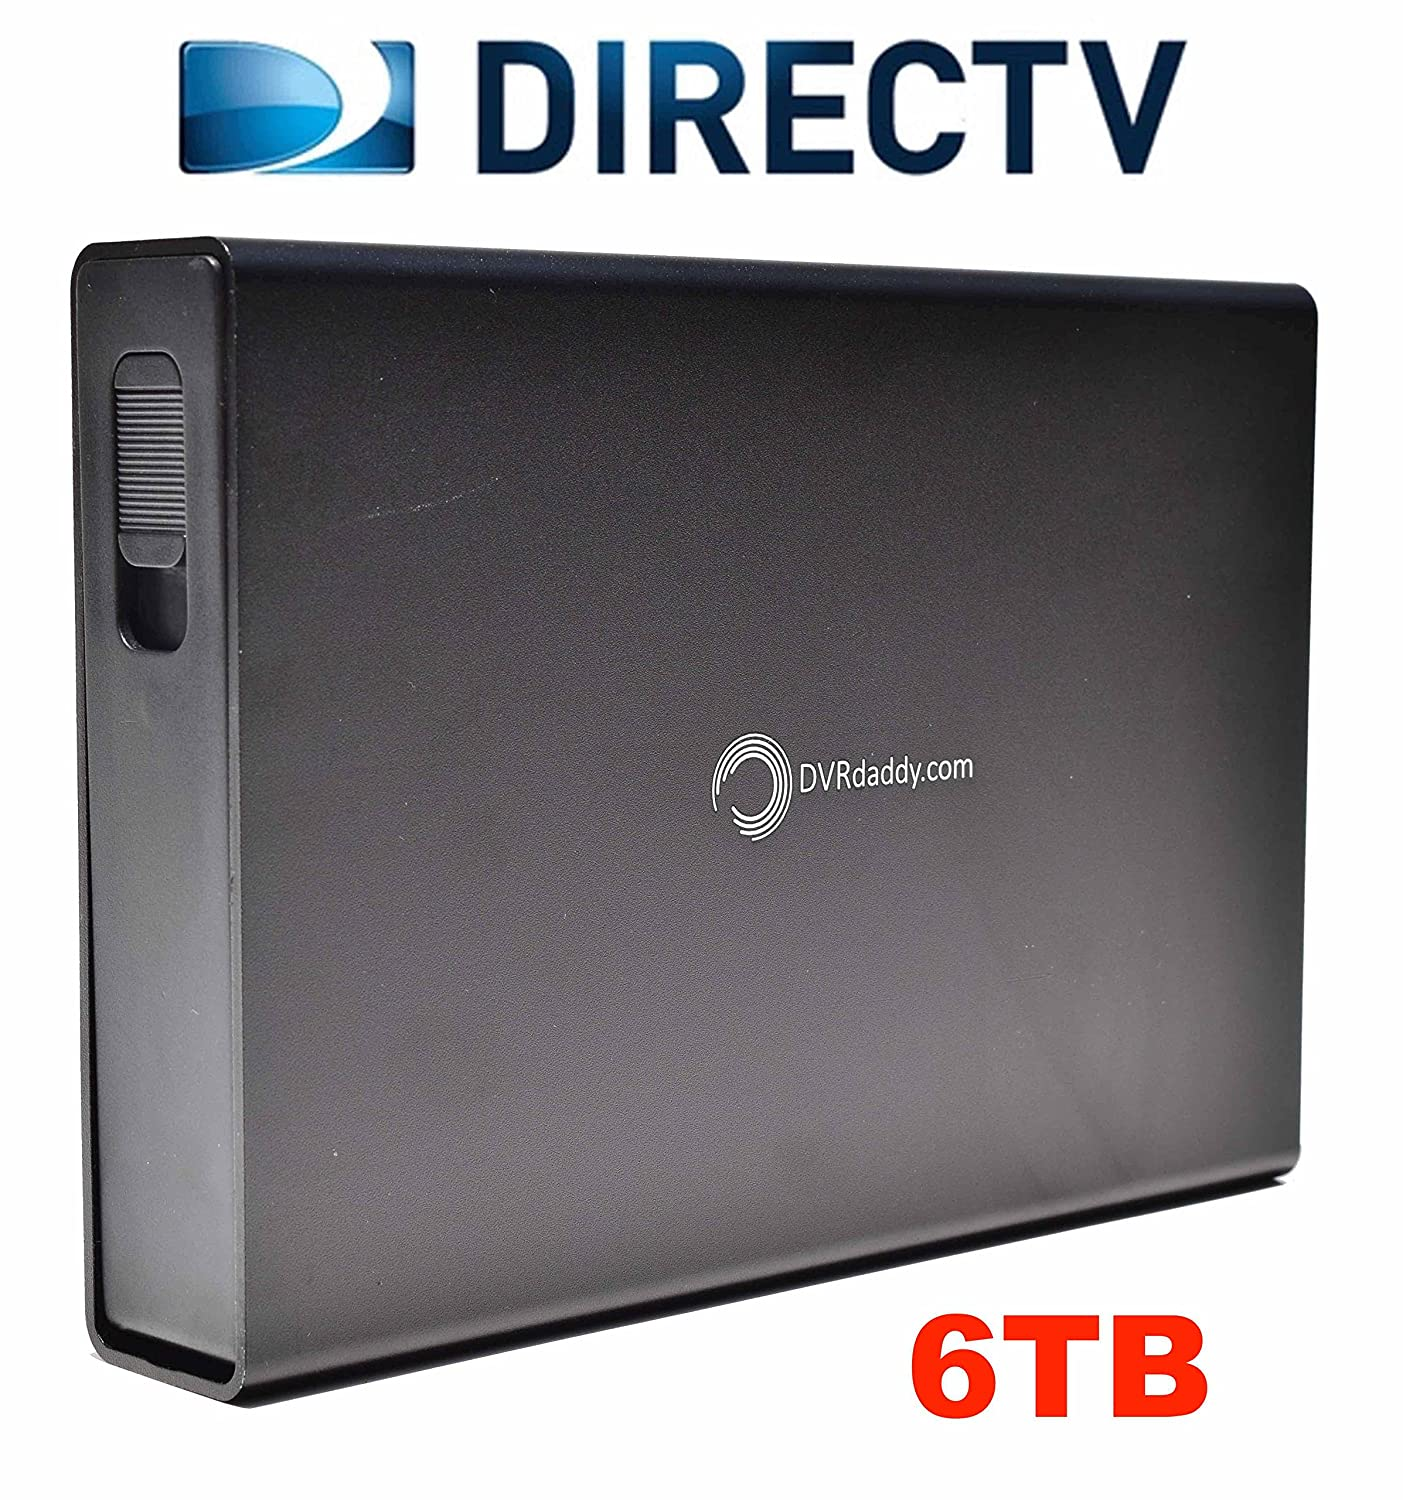 Amazon.com: 6TB DVRdaddy External DVR Hard Drive Expander For DirecTV HR34,  HR44 and HR54 Genie DVR. +6,000 Hours Recording Capacity and!: